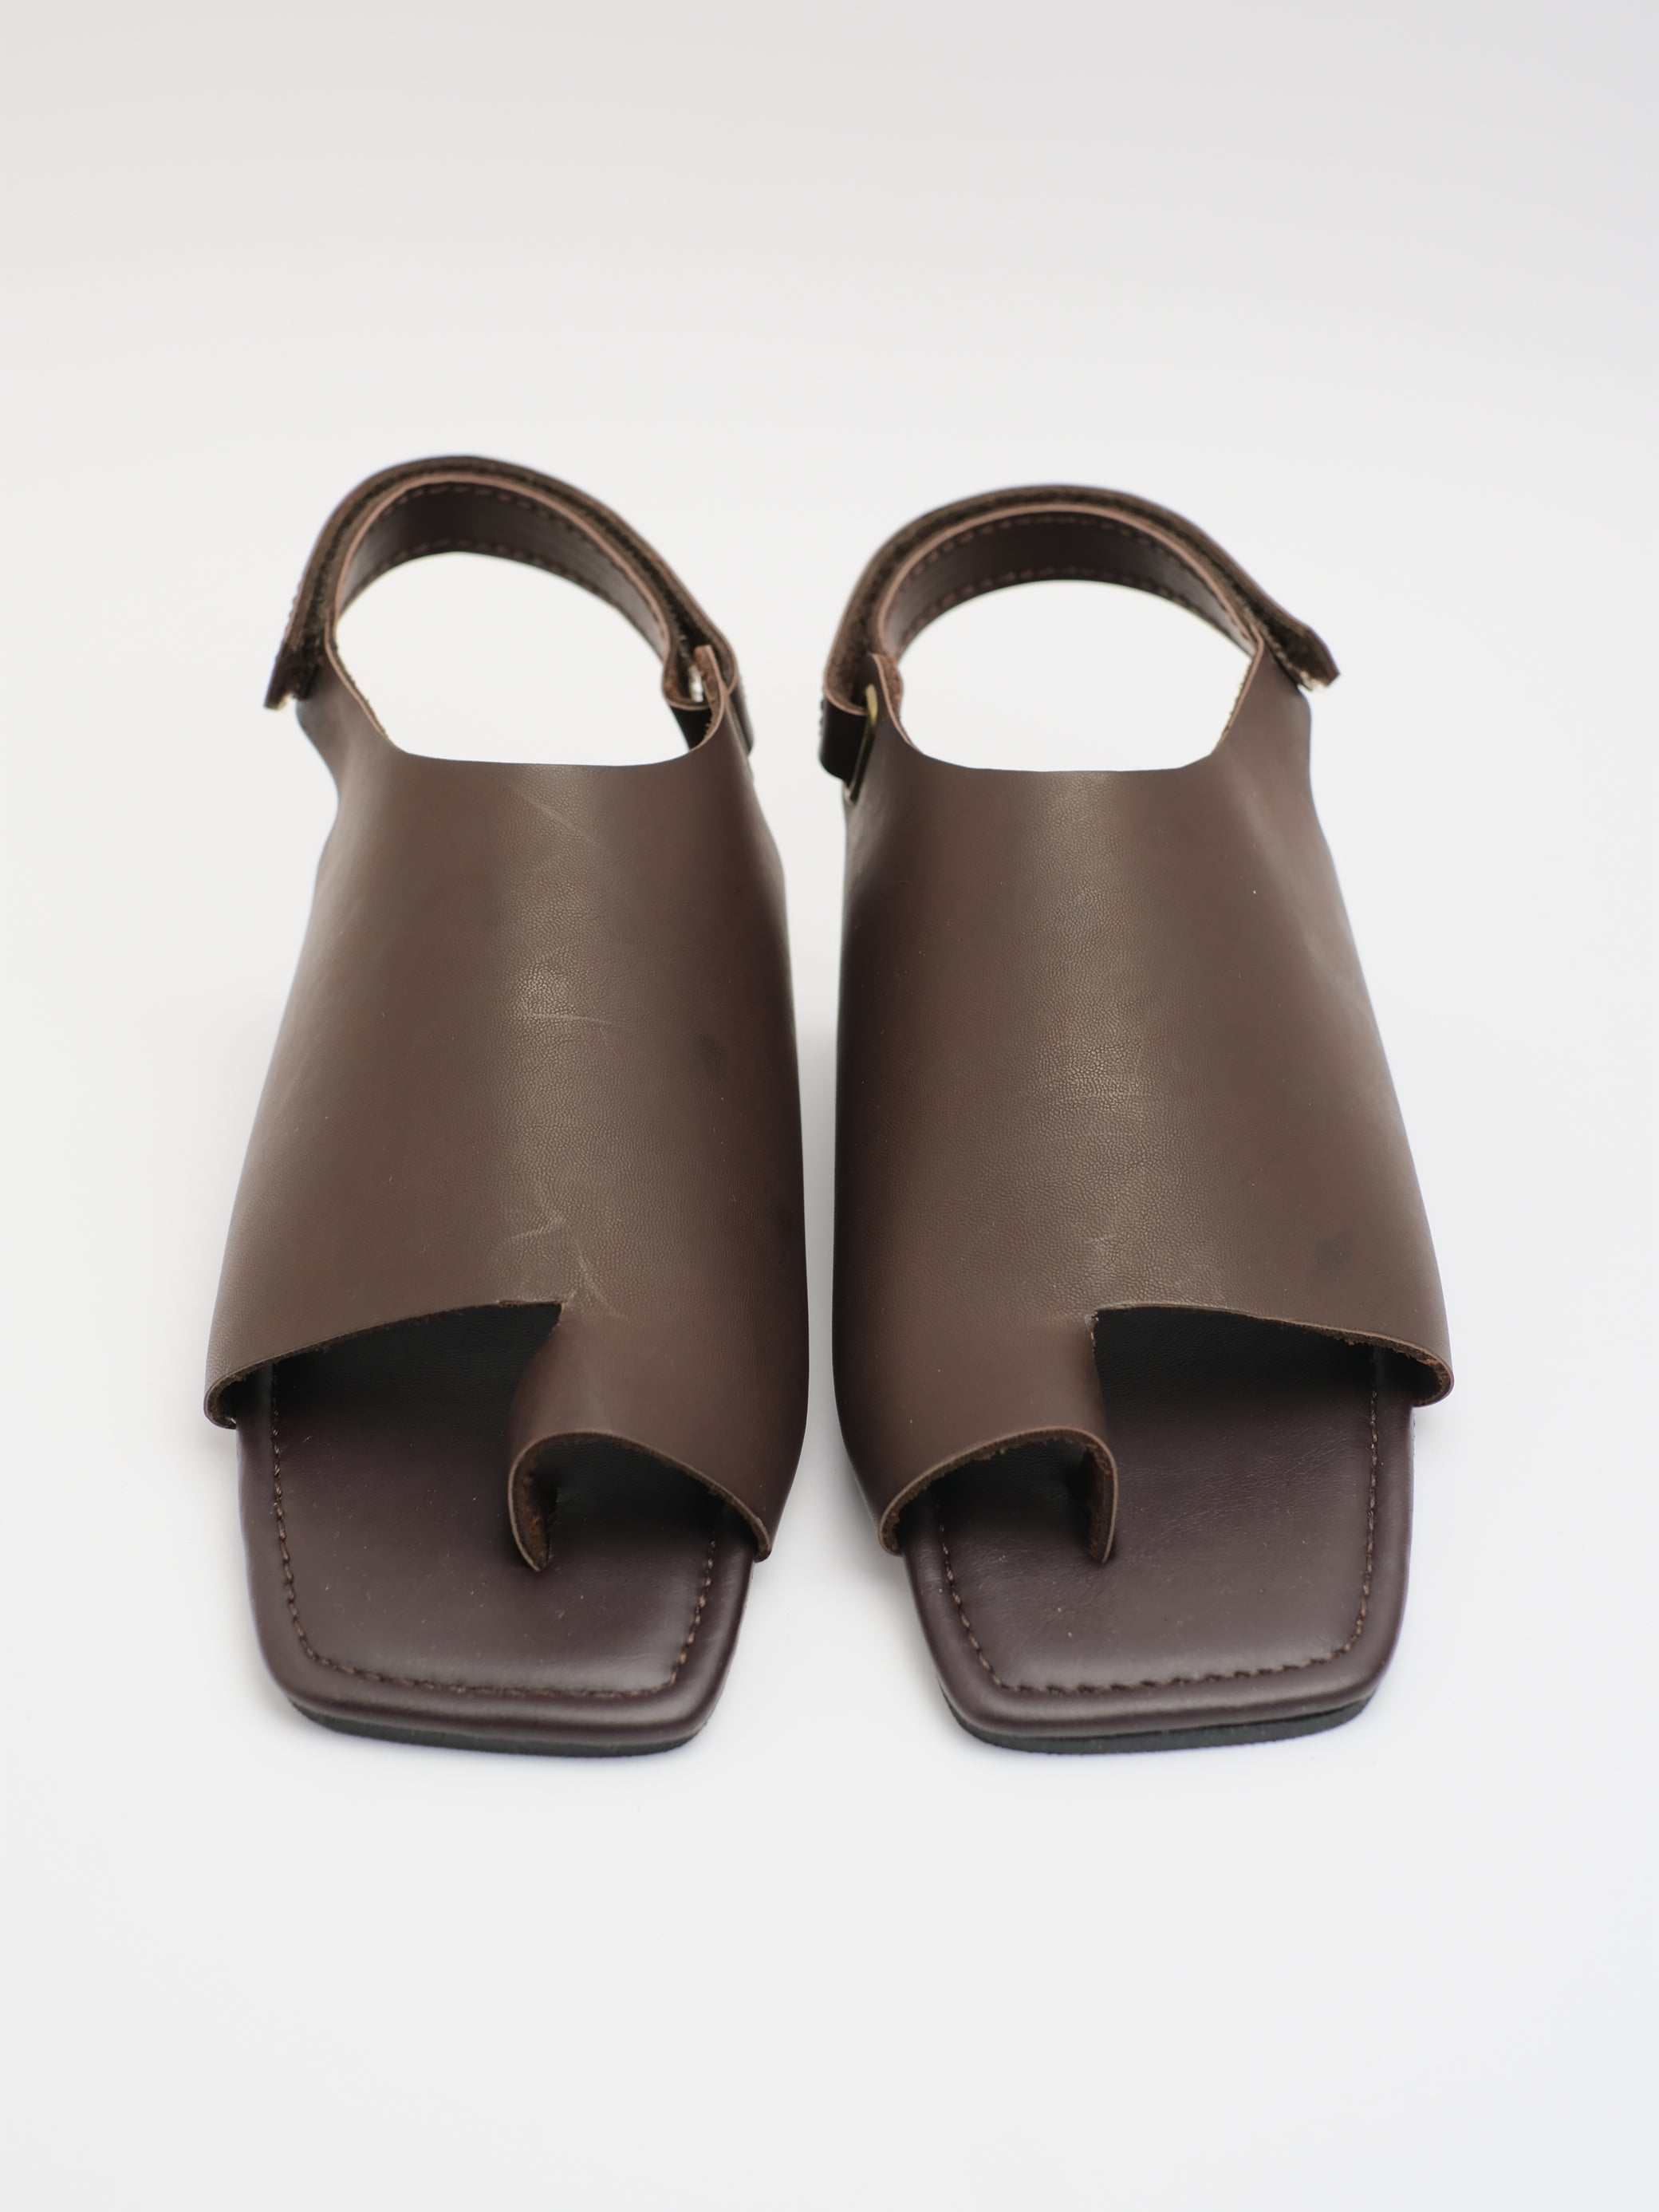 UNISEX: SOL COVERED SANDAL (BROWN)